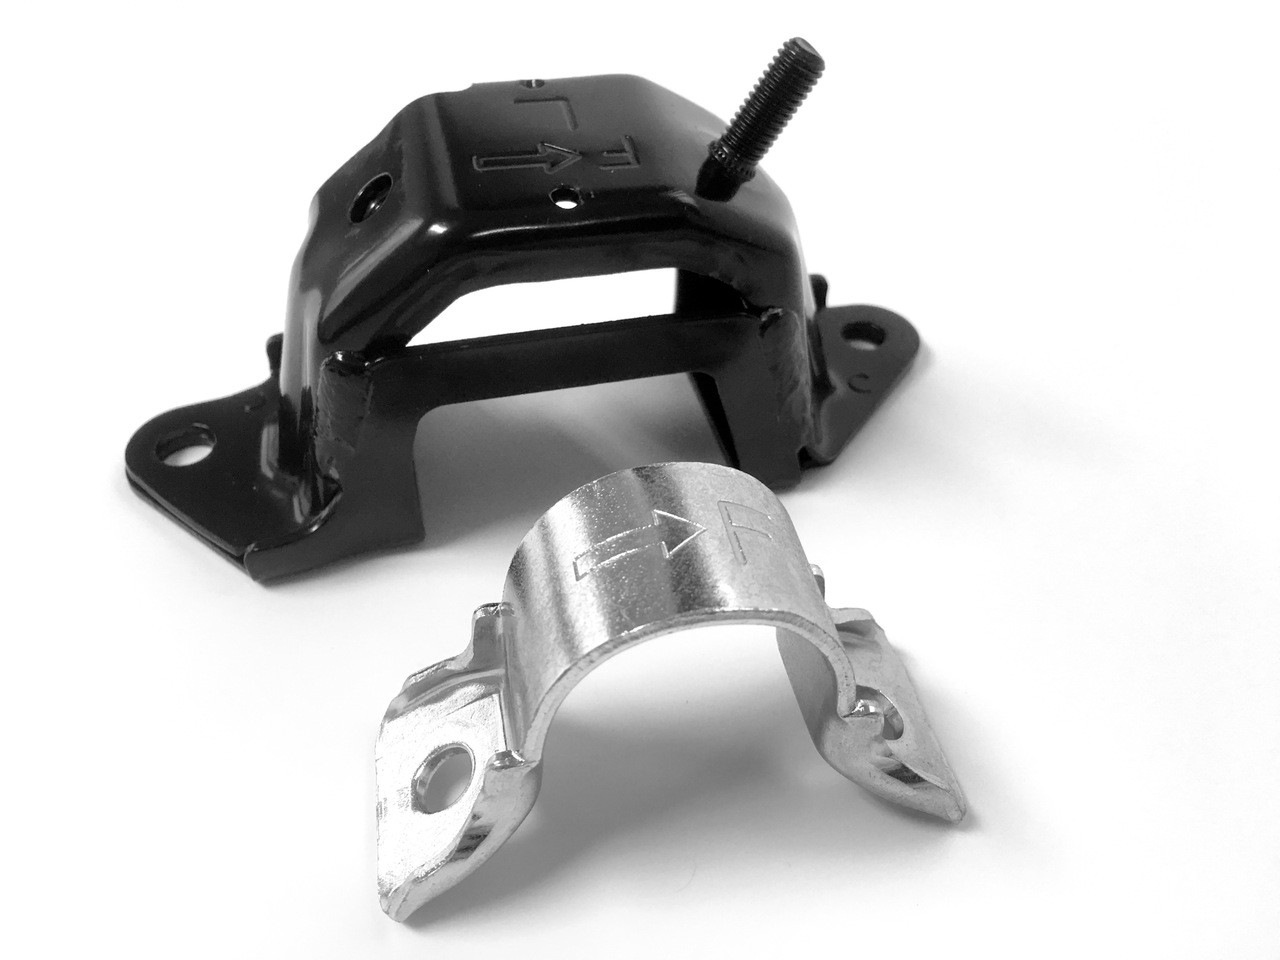 GDB Reinforced Rear Stabilizer Mounting Bracket Set at AVOJDM.com